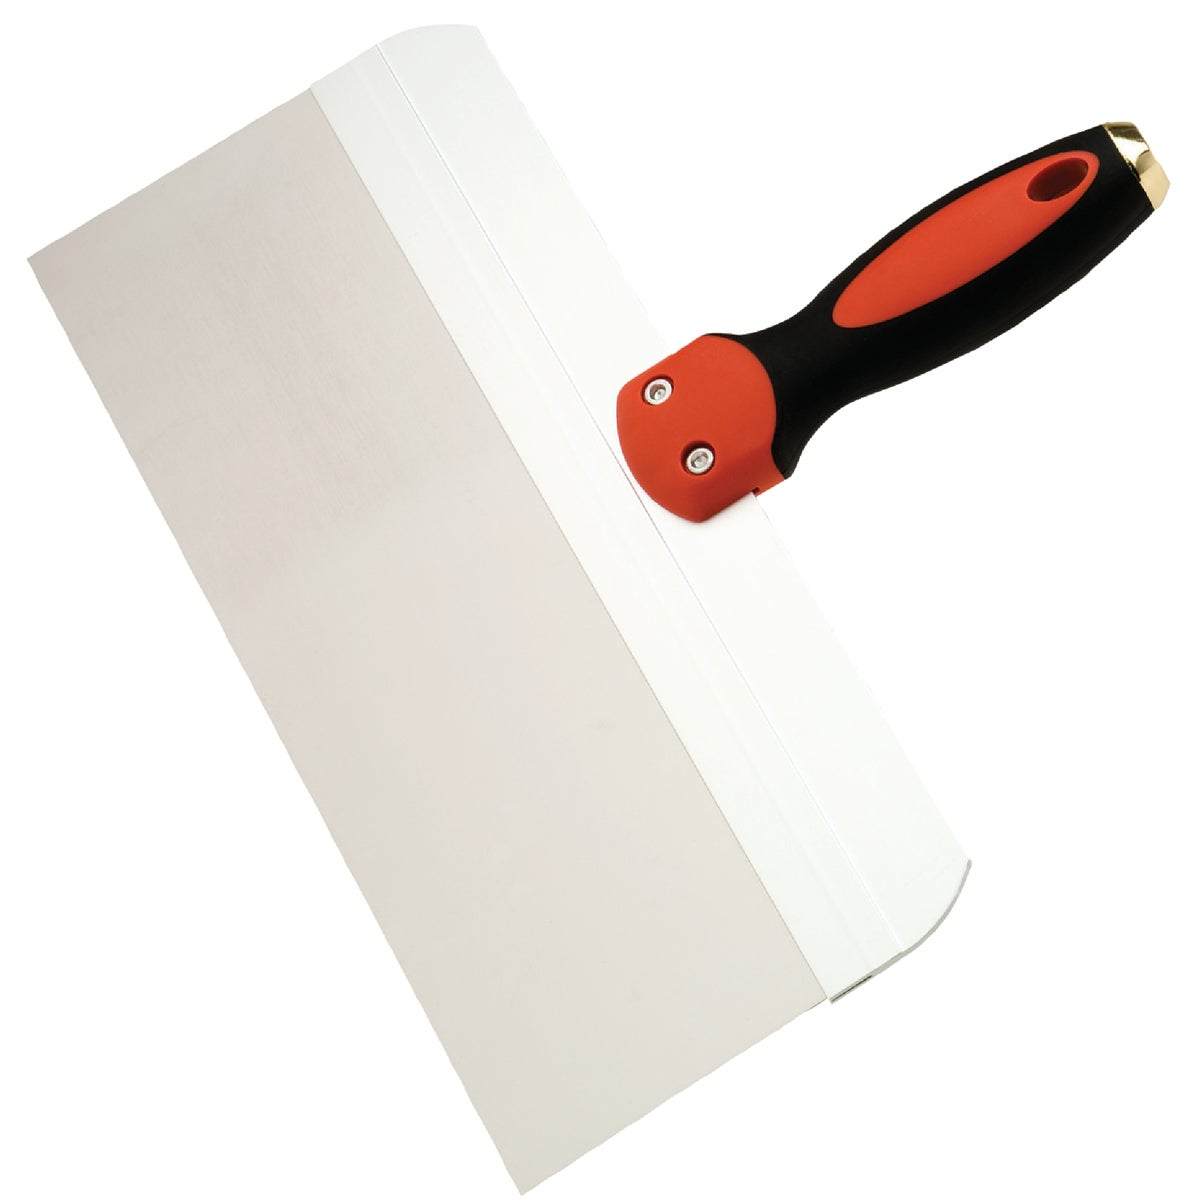 "12"" SS TAPING KNIFE ERGO - 323000 by Do it Best"